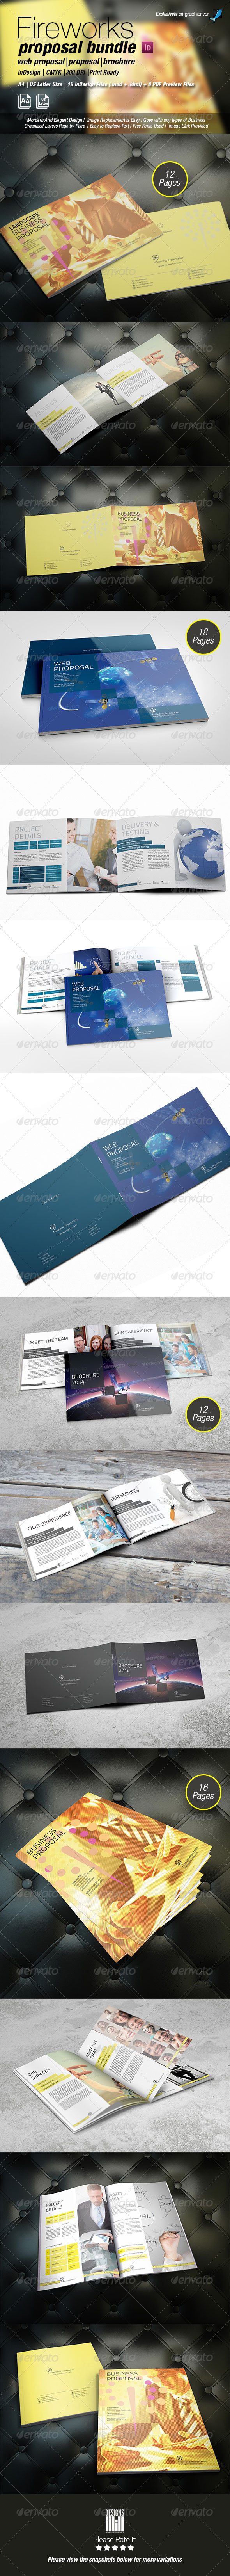 GraphicRiver Fireworks Proposal Pack 8511541